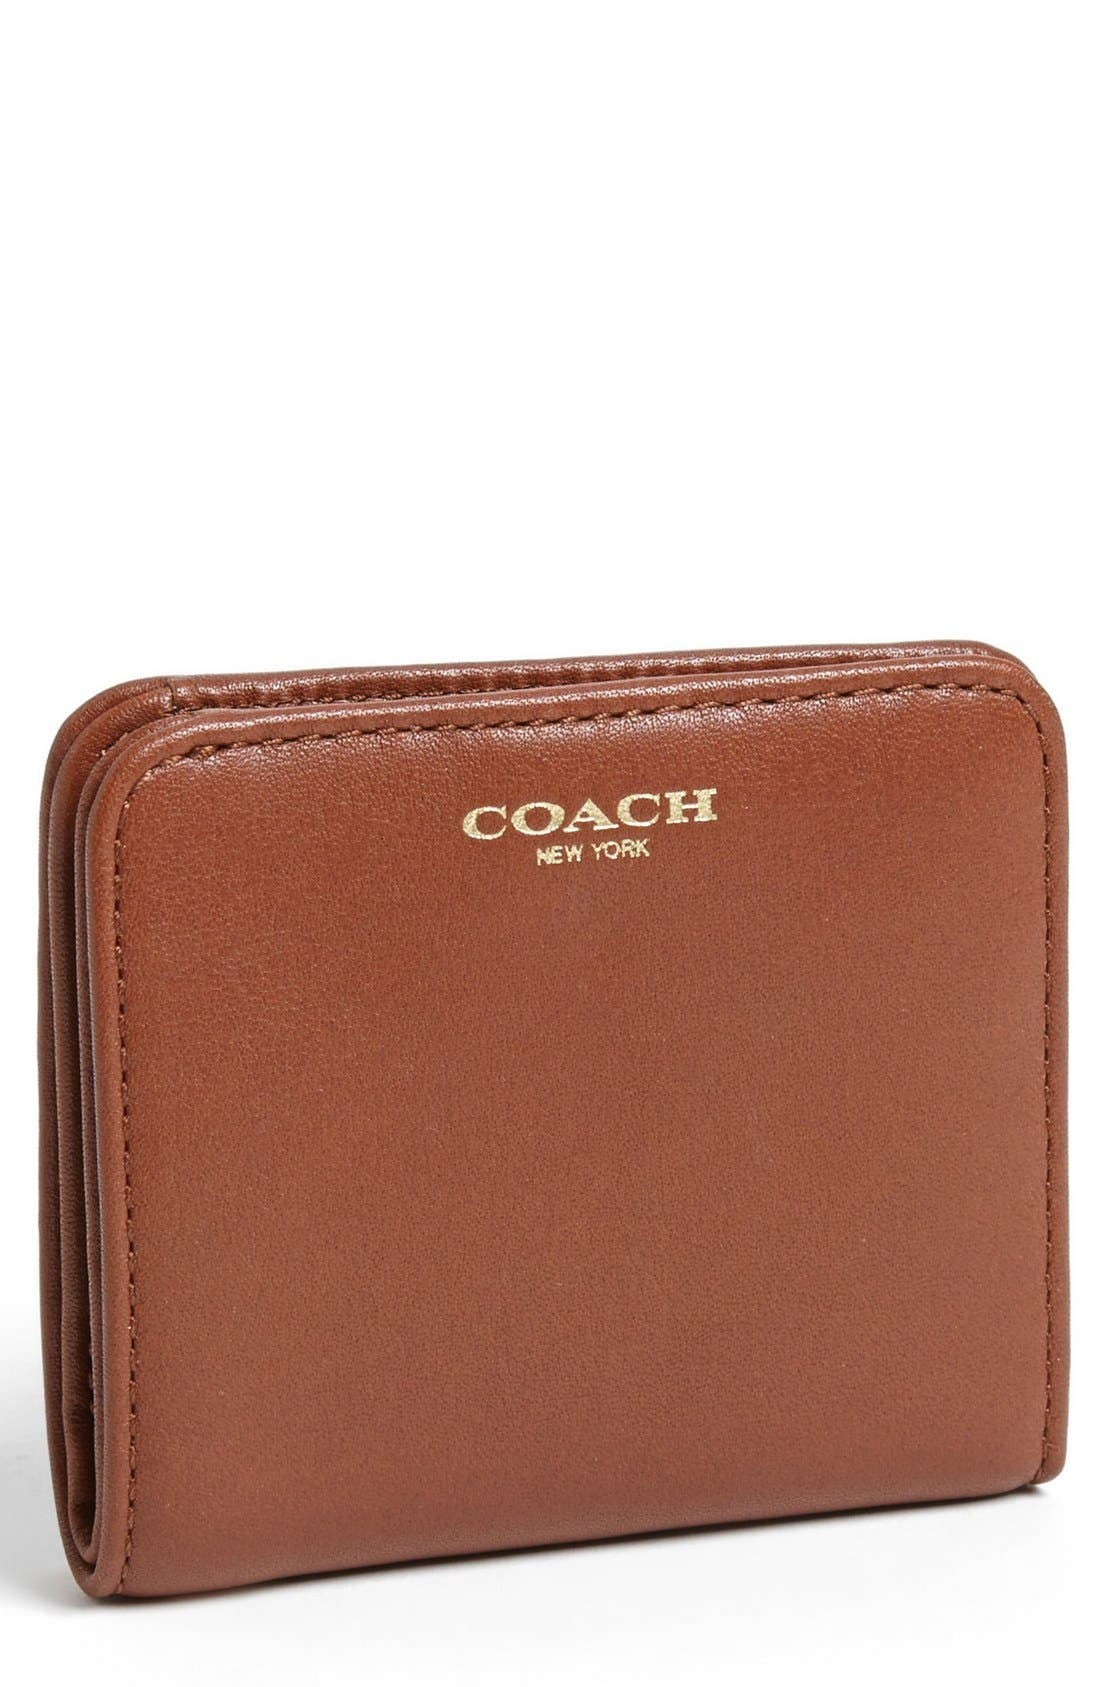 Main Image - COACH 'Legacy - Small' Leather Wallet